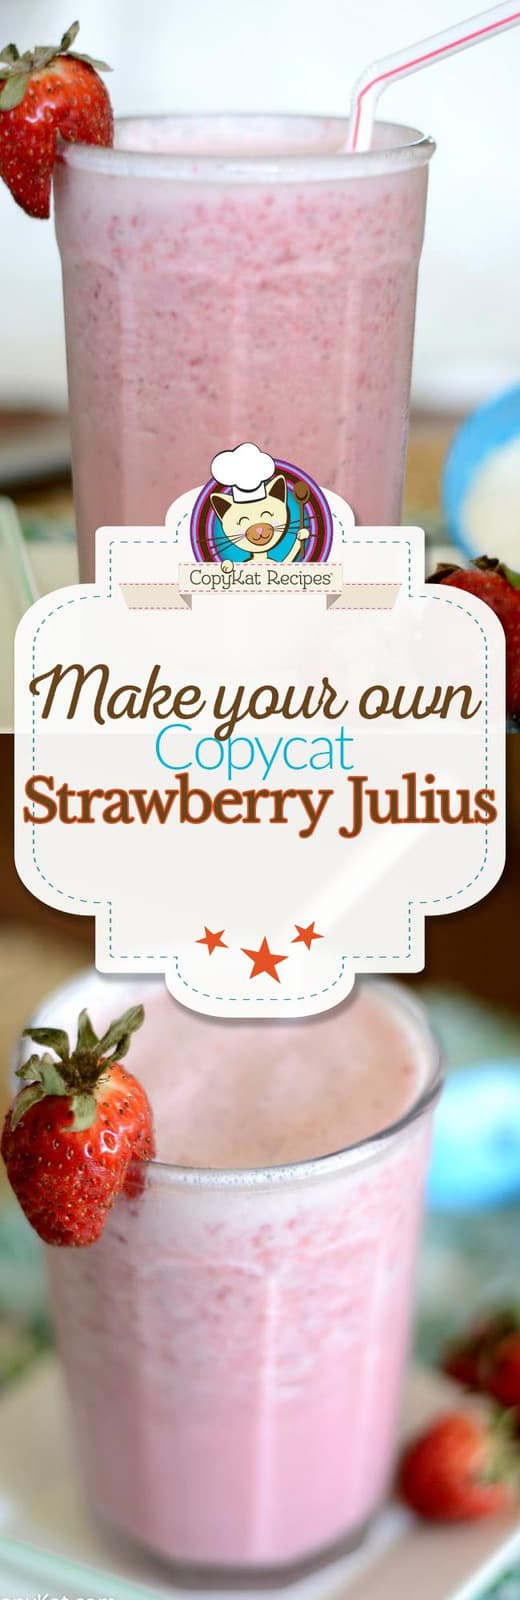 Make your own homemade Strawberry Julius from scratch with this easy copycat recipe.